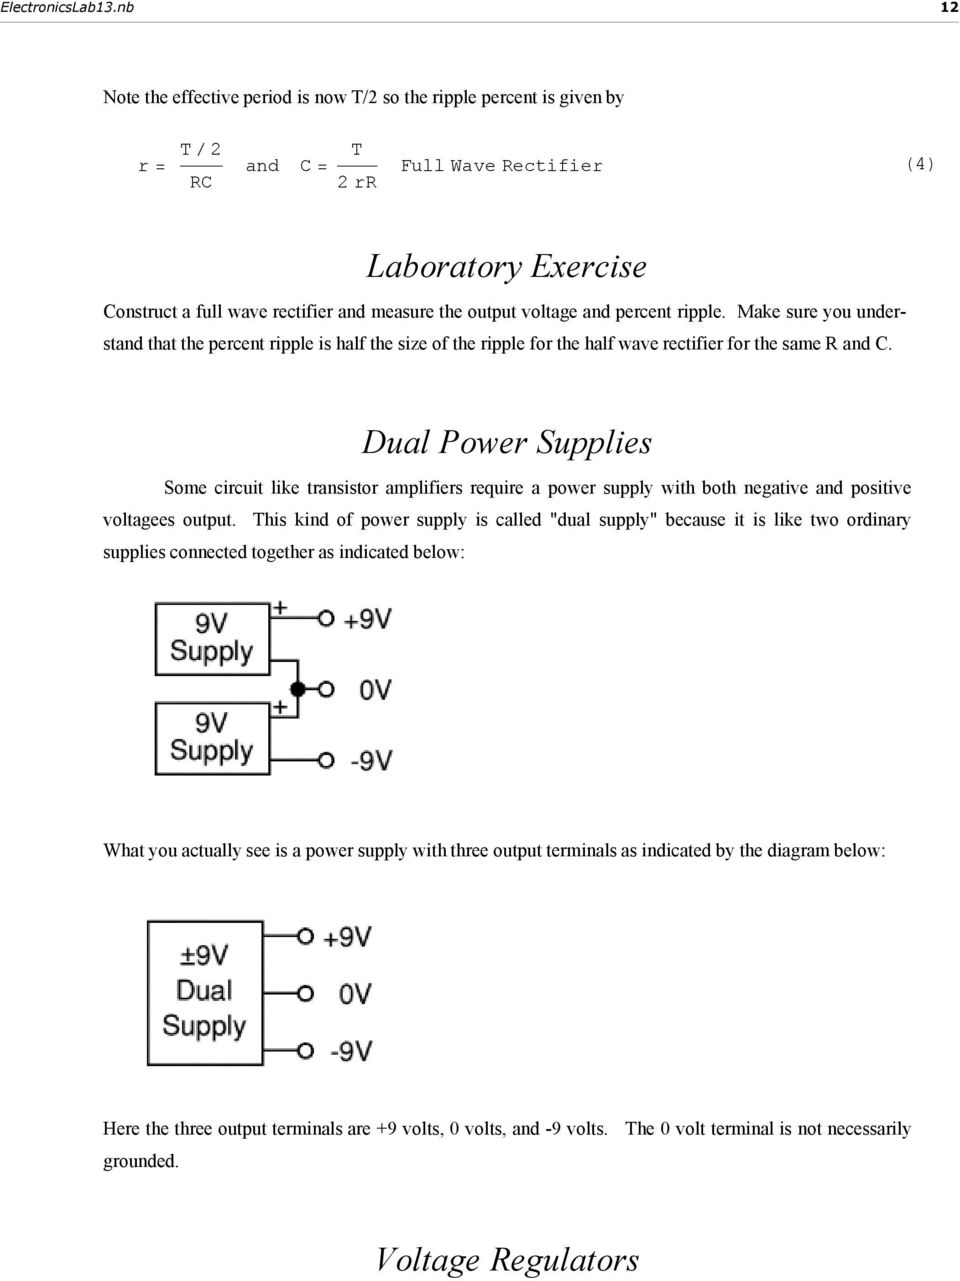 13 Diode Rectifiers Filters And Power Supplies Pdf Rectifiercircuits2 Dual Some Circuit Like Transistor Amplifiers Require A Supply With Both Negative